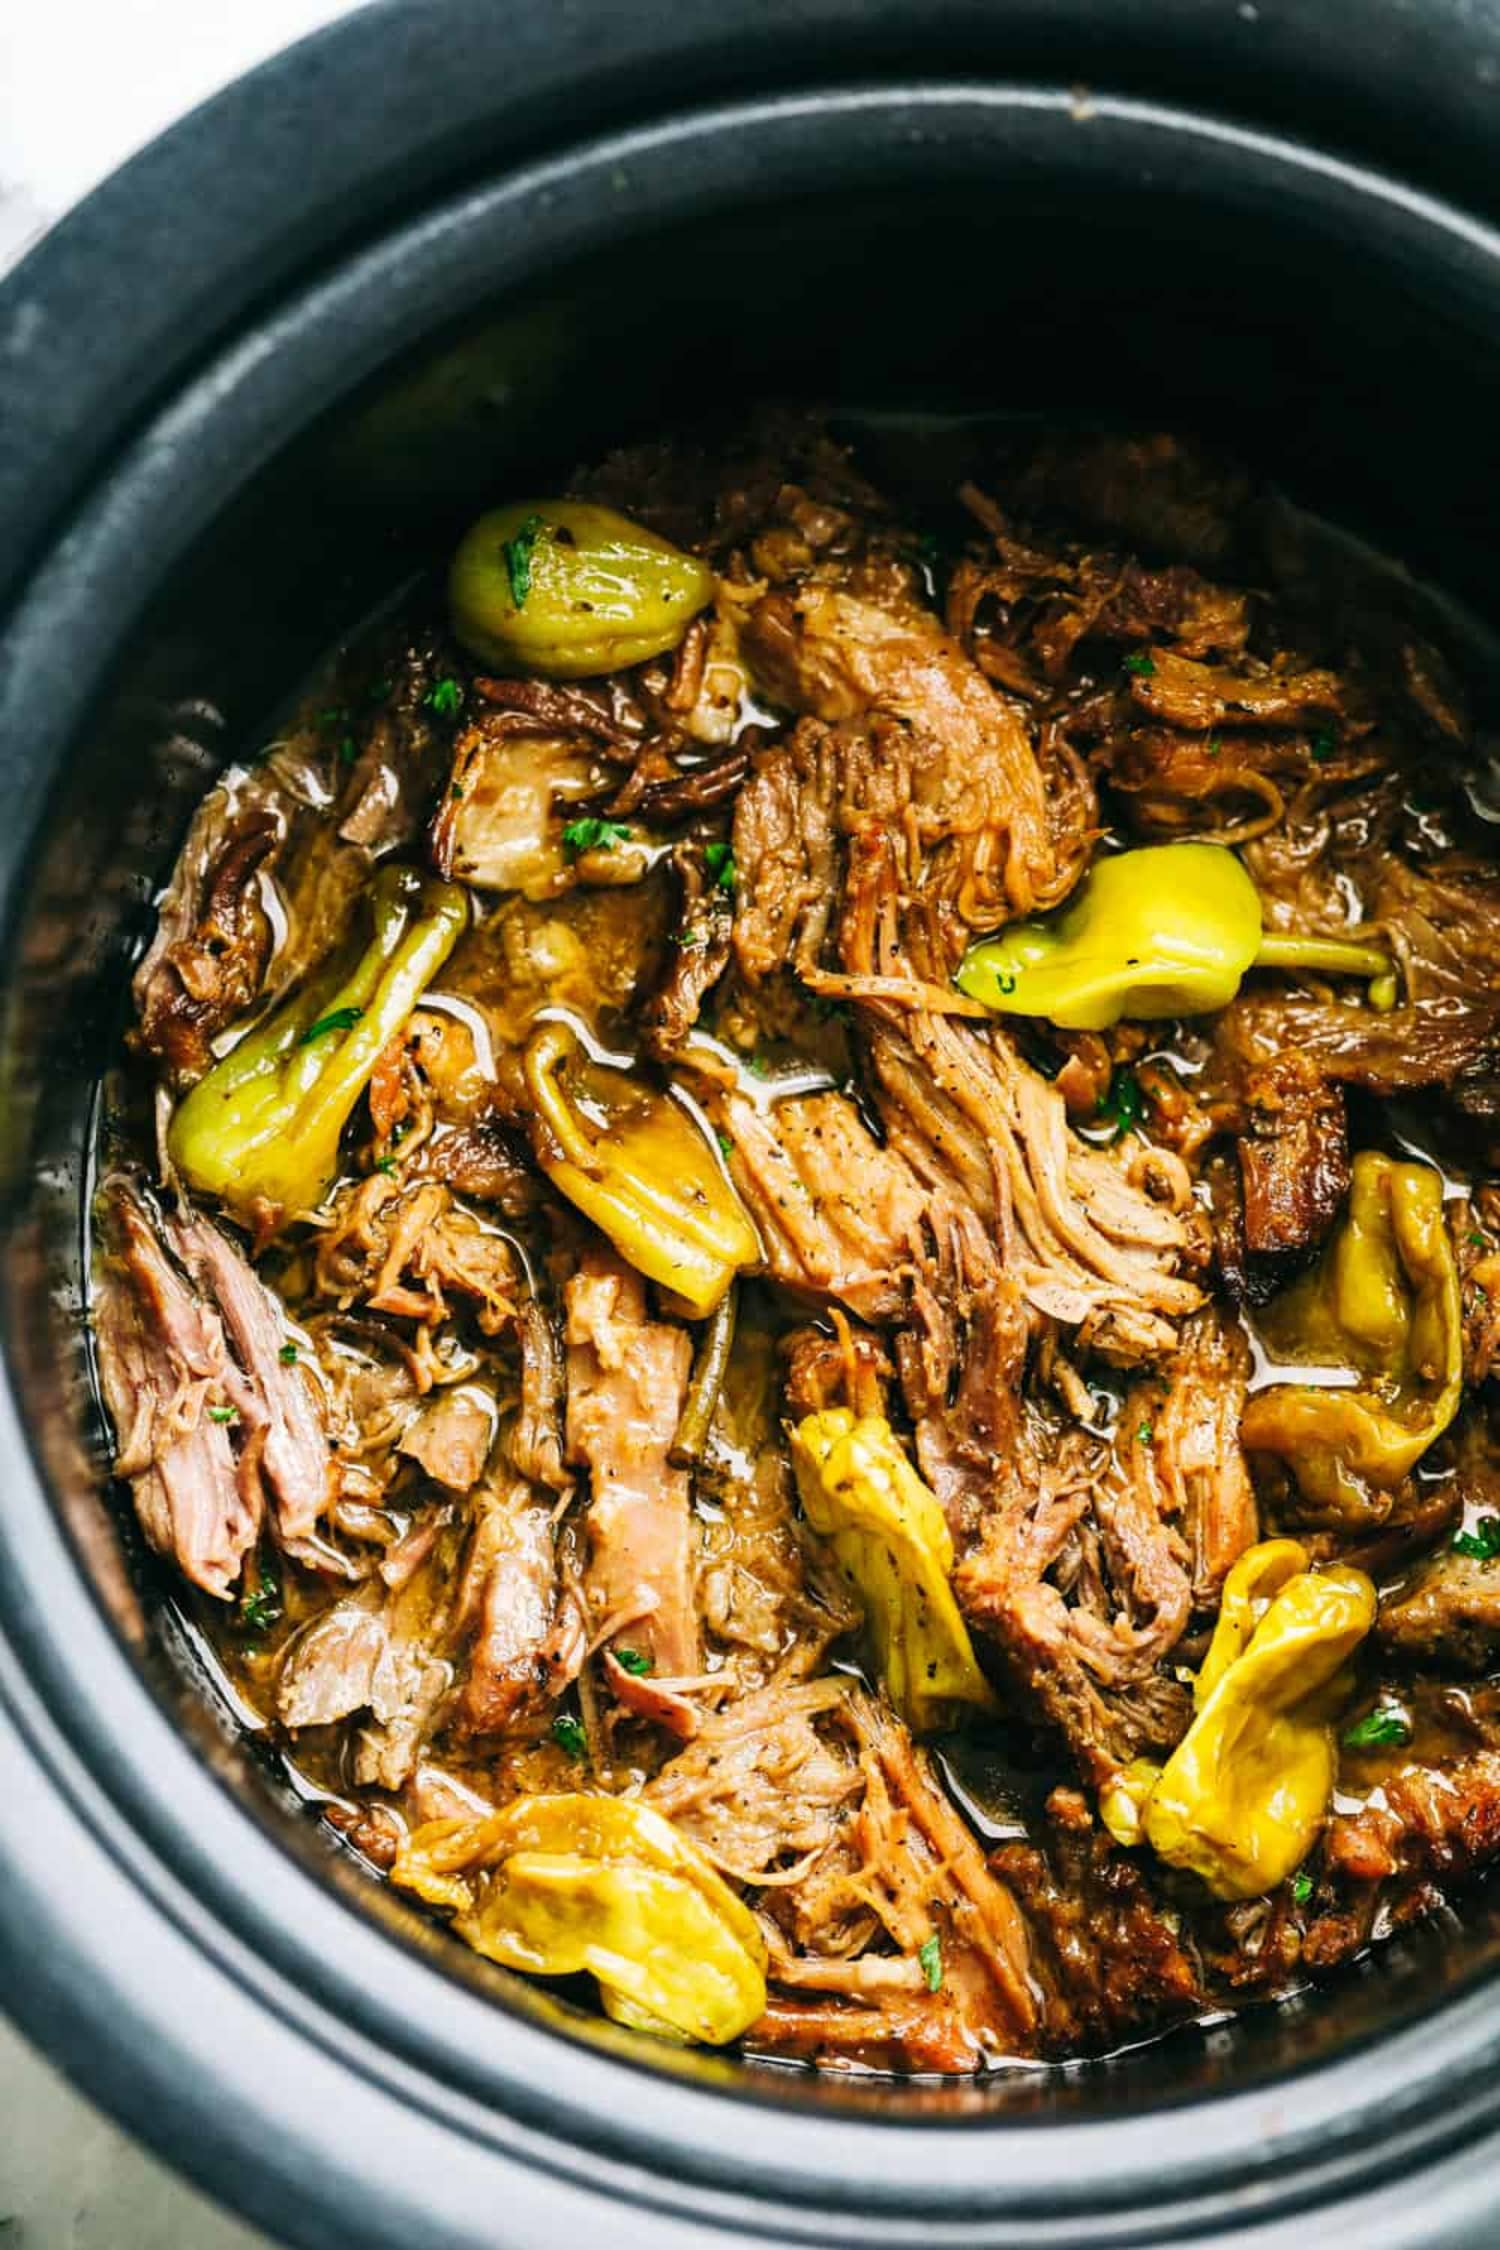 This Slow Cooker Pork Roast Is an Instant Classic